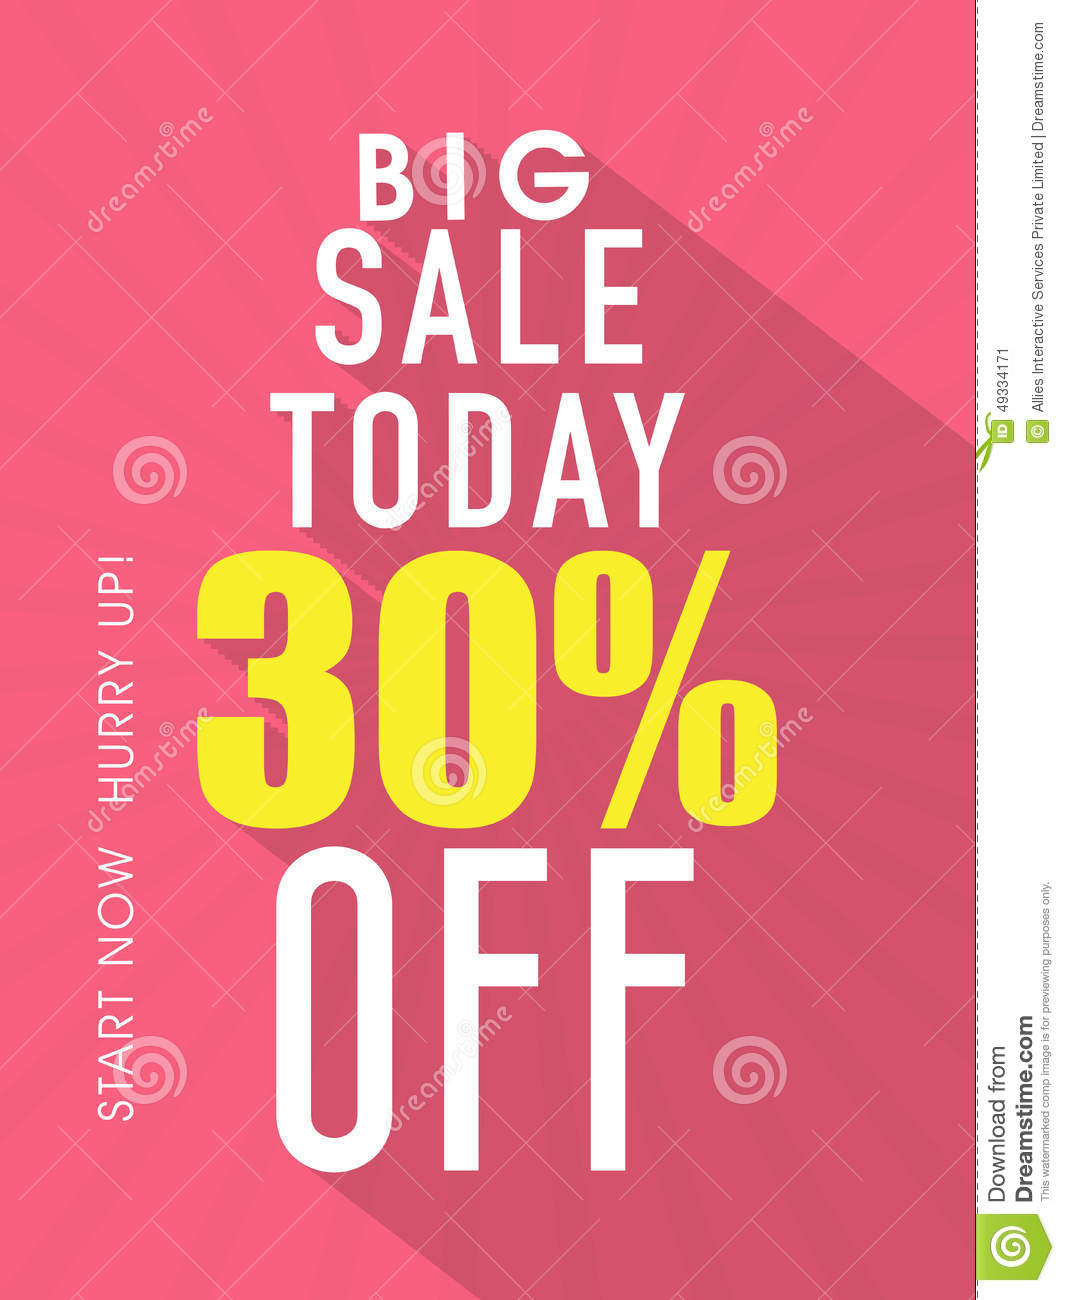 Big Sale Flyer, Template Or Banner. Stock Photo - Image: 49334171